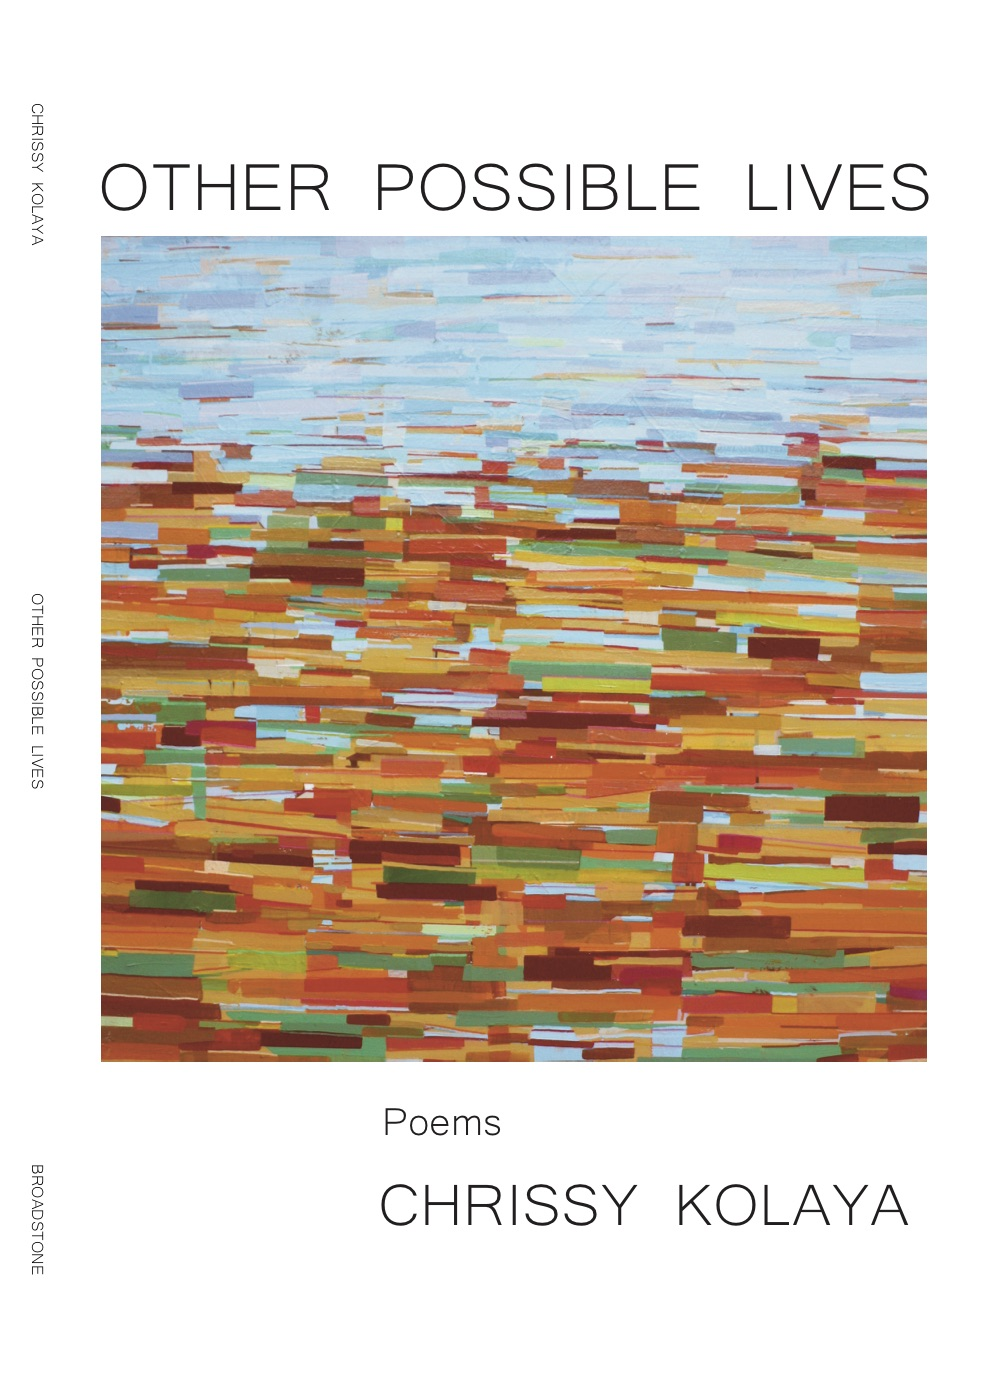 d3e0a45cc74 I'm excited to share the news that my next book of poems, Other Possible  Lives, is coming out this fall. I'm looking forward to sharing the cover  and blurbs ...